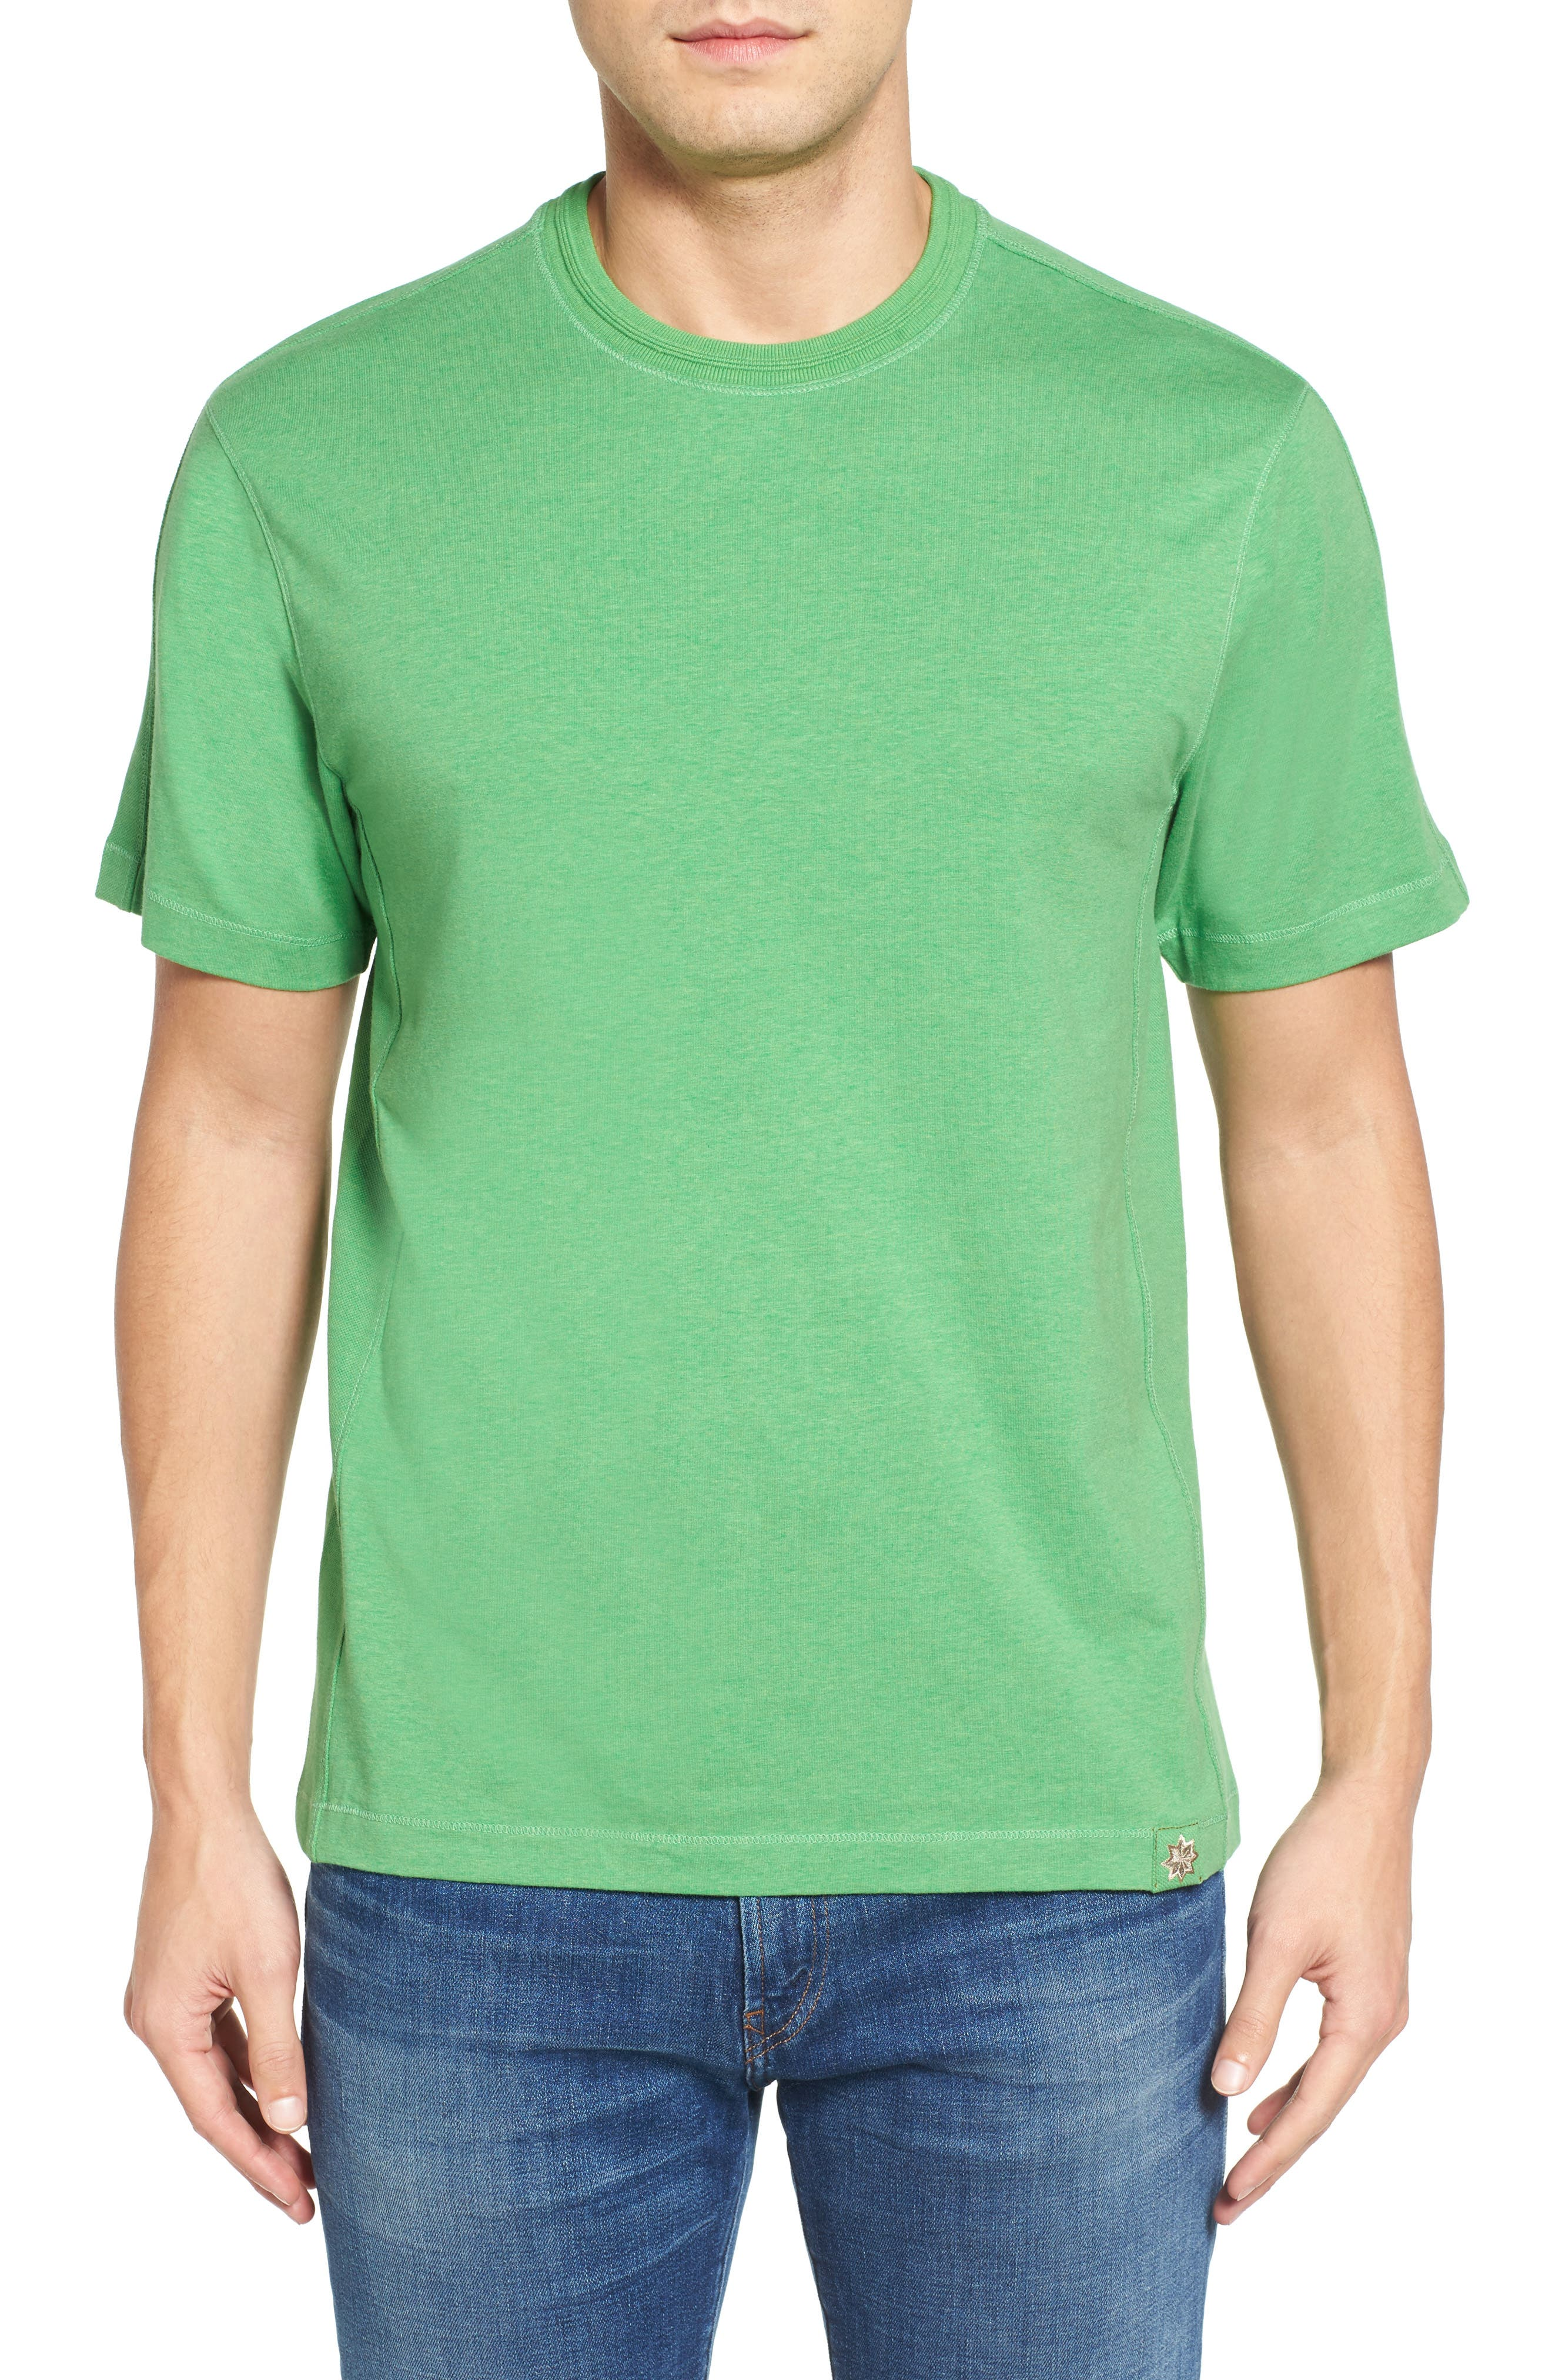 Alternate Image 1 Selected - Thaddeus Steve Stretch Jersey T-Shirt